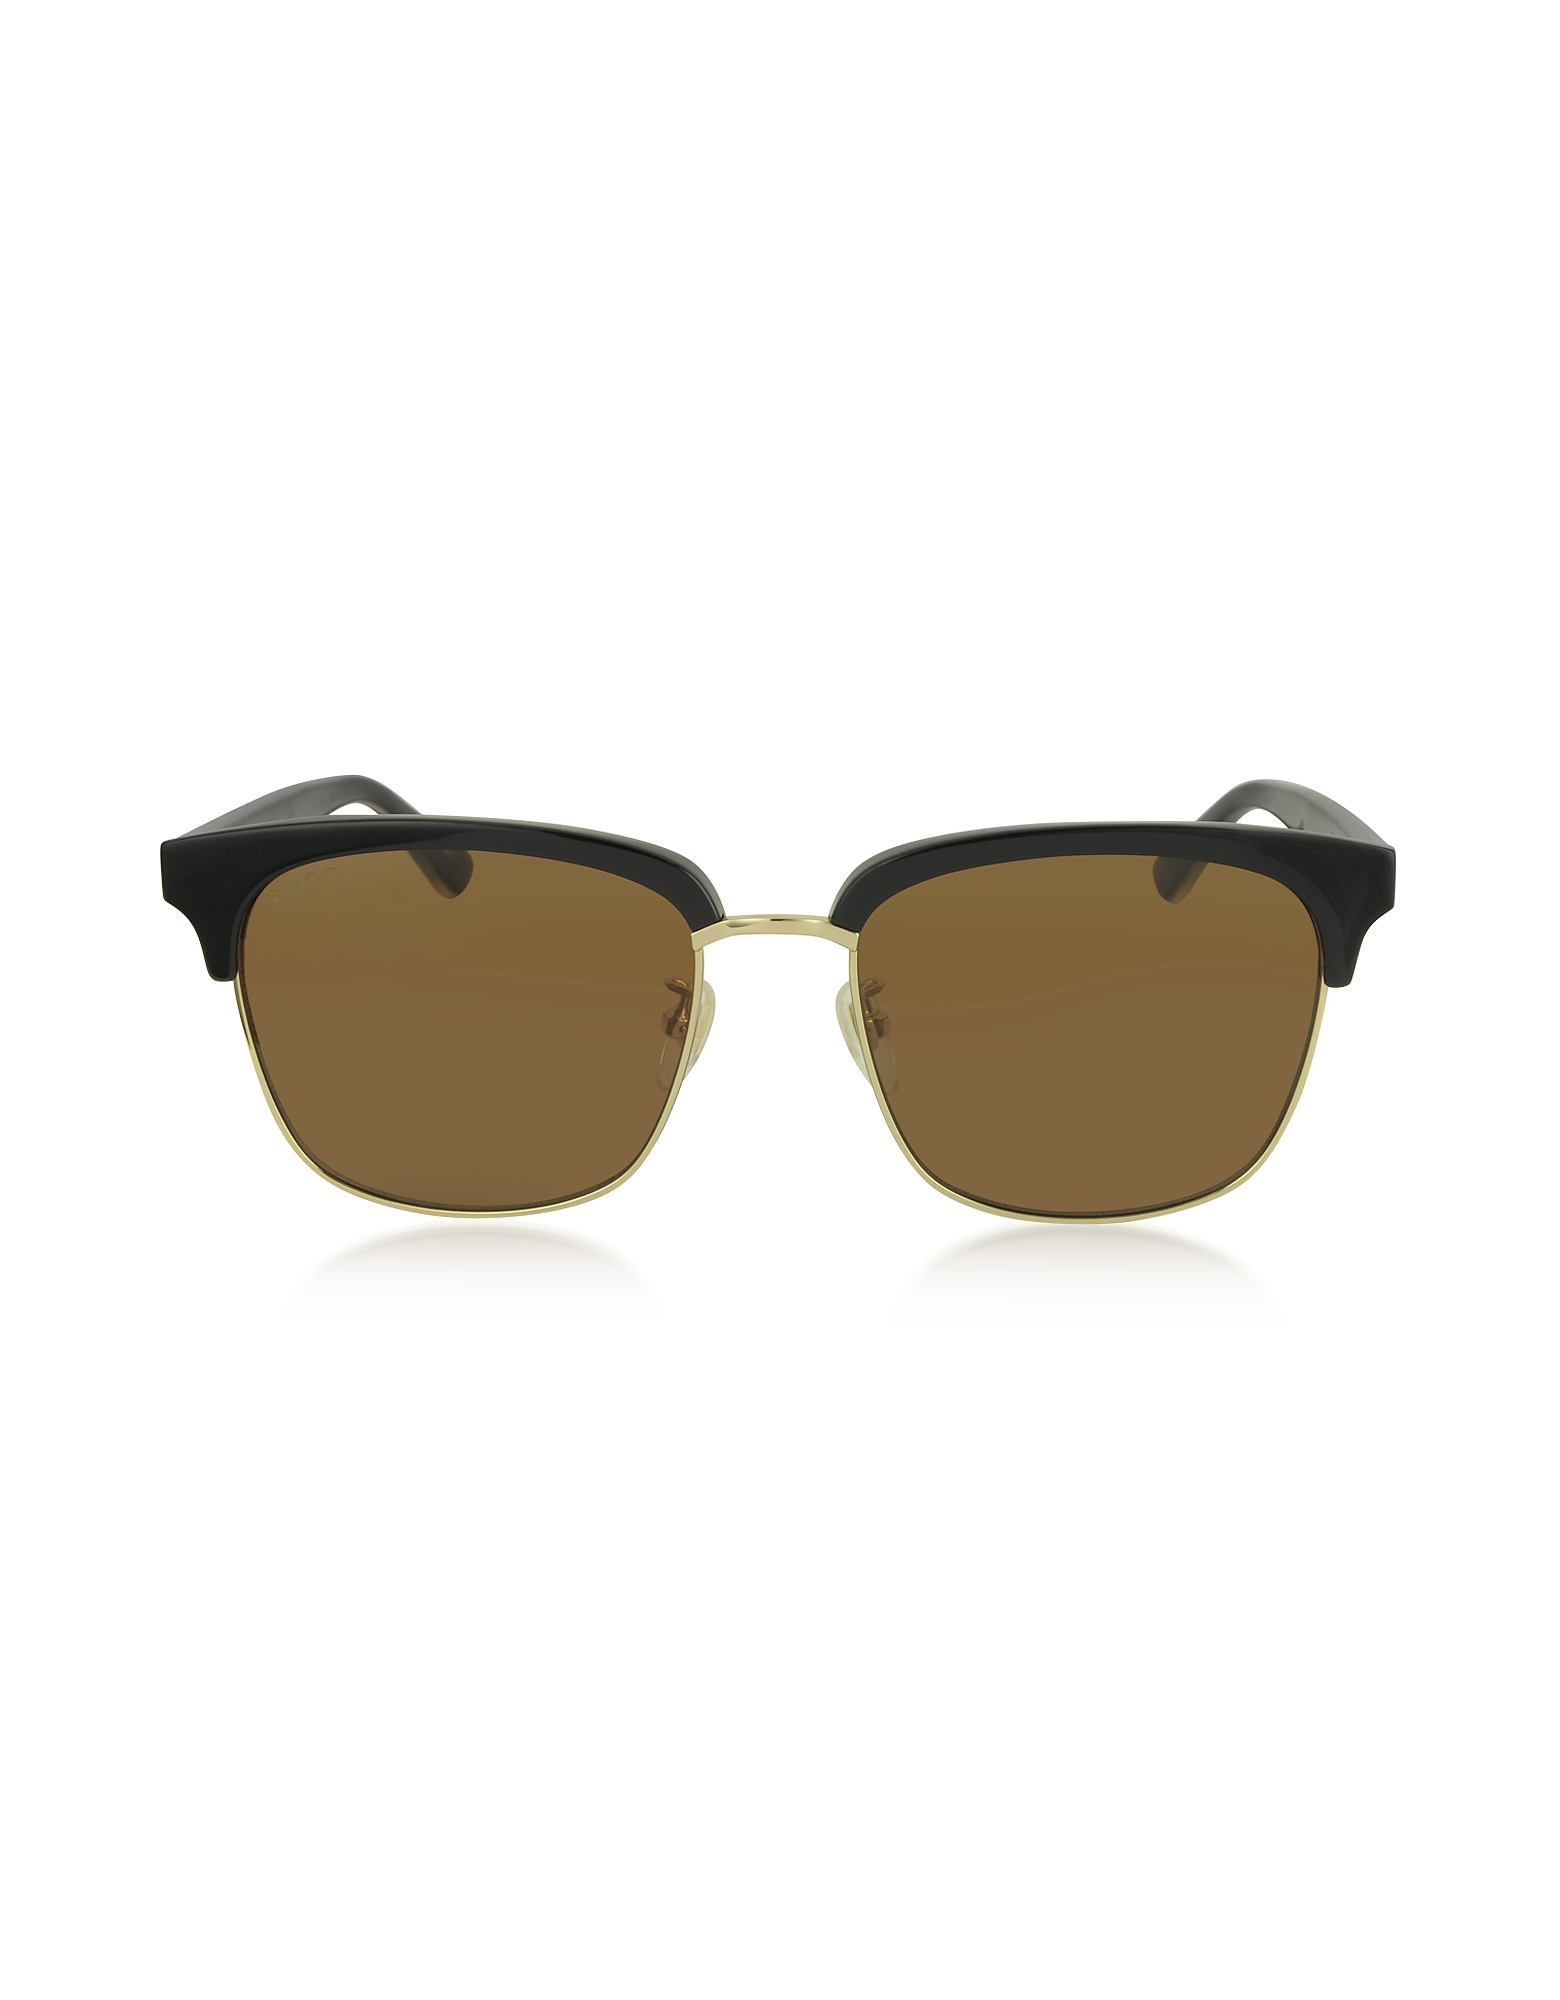 Gucci Designer Sunglasses, Rectangular-frame Metal Sunglasses